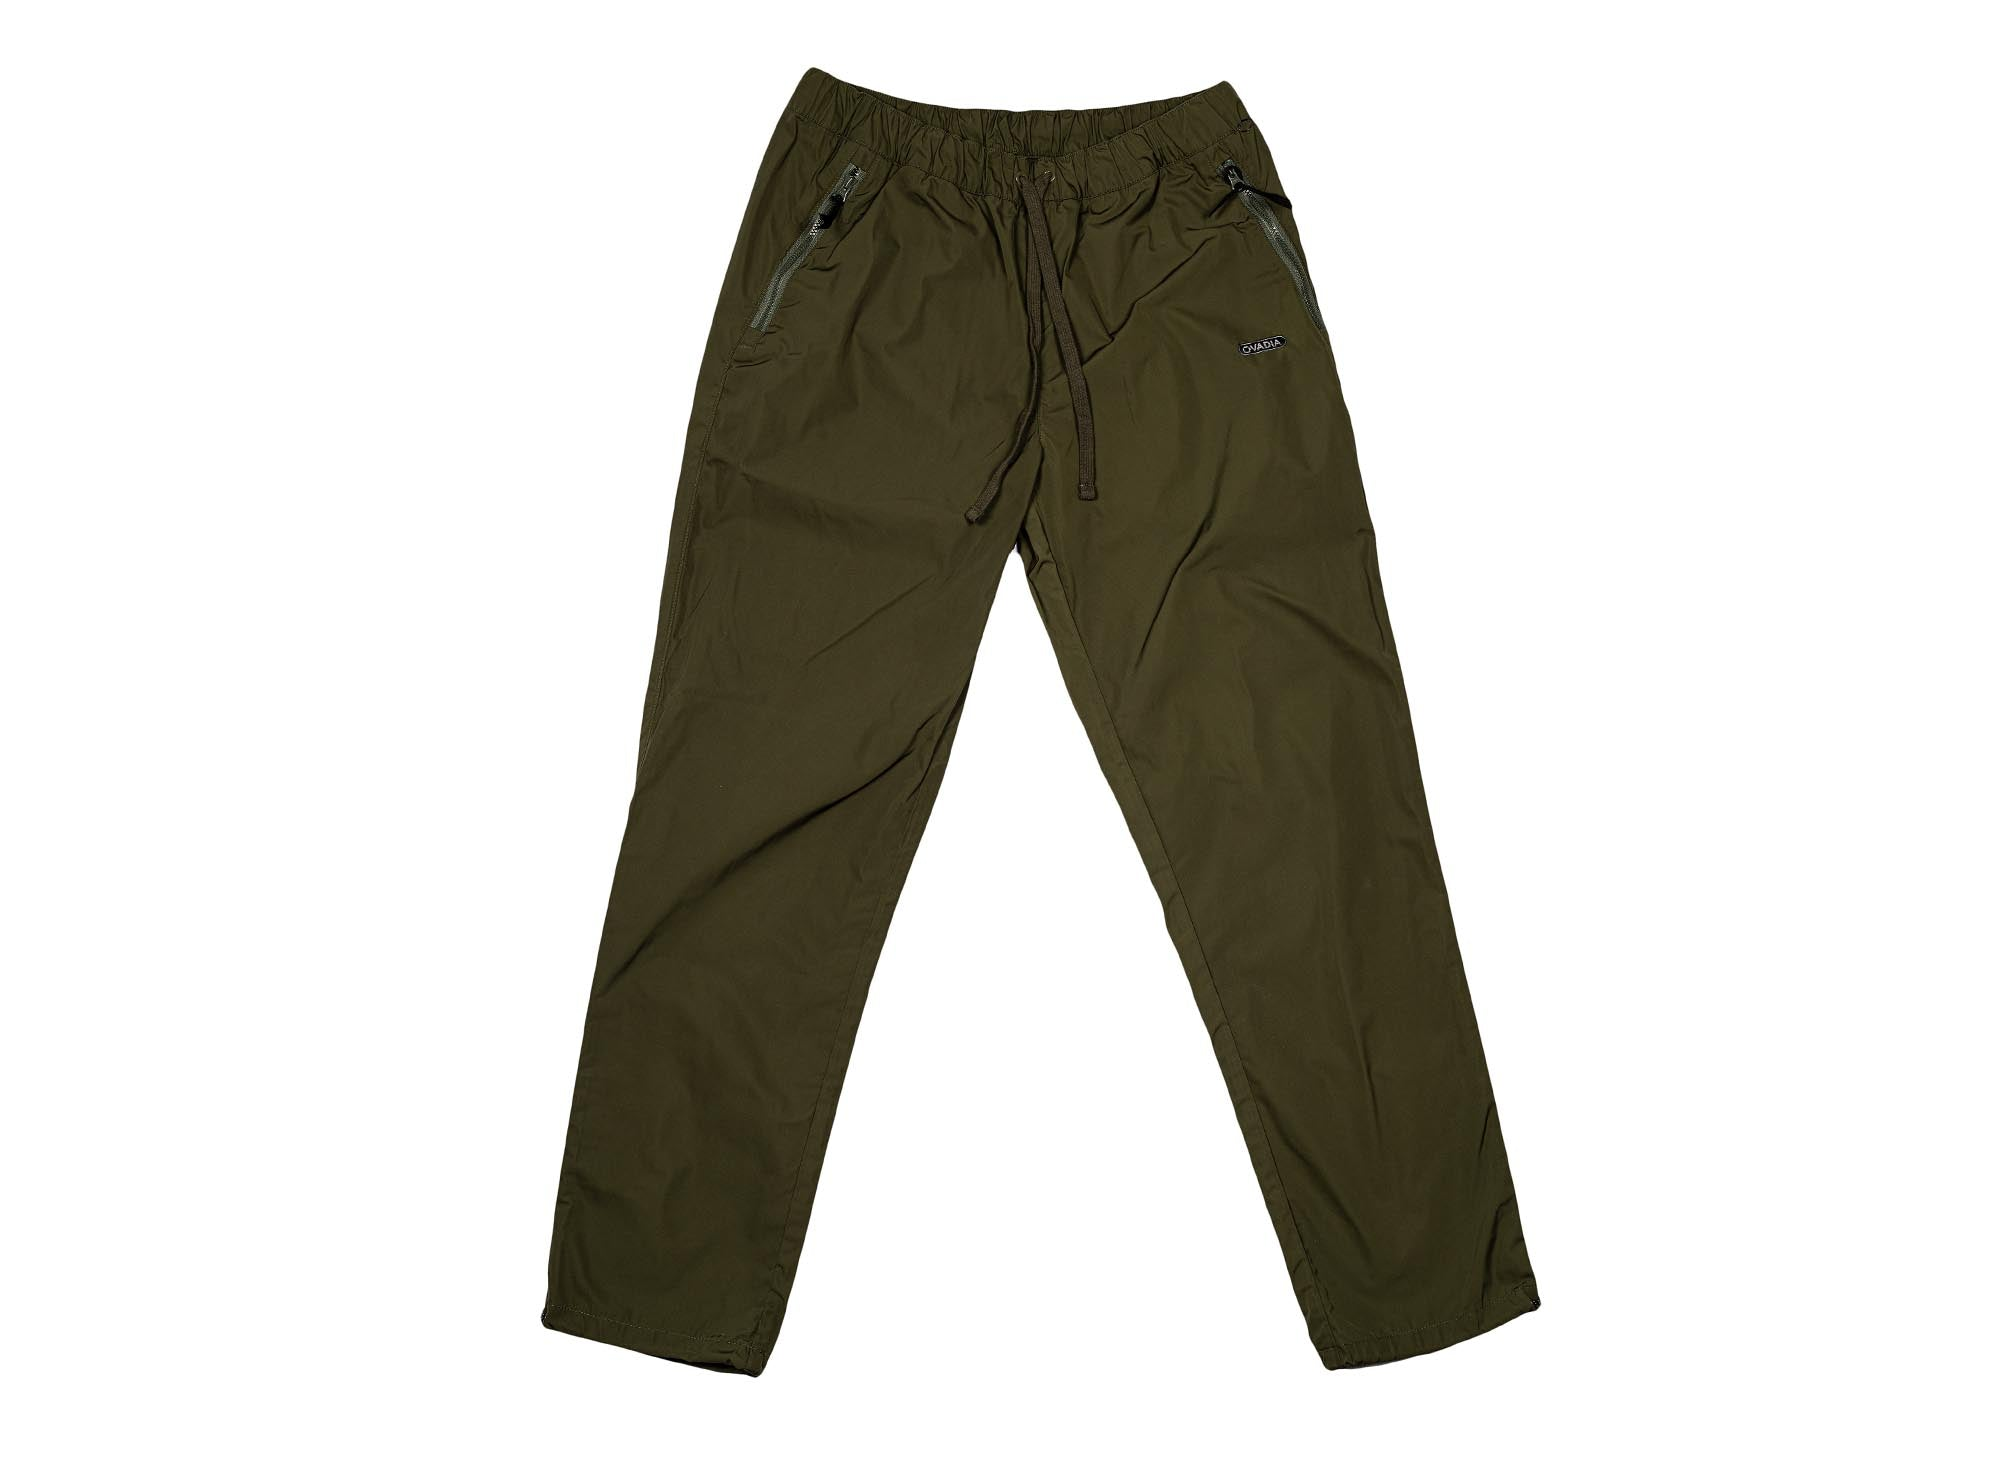 Ovadia and Sons Trail Pants 'Olive'